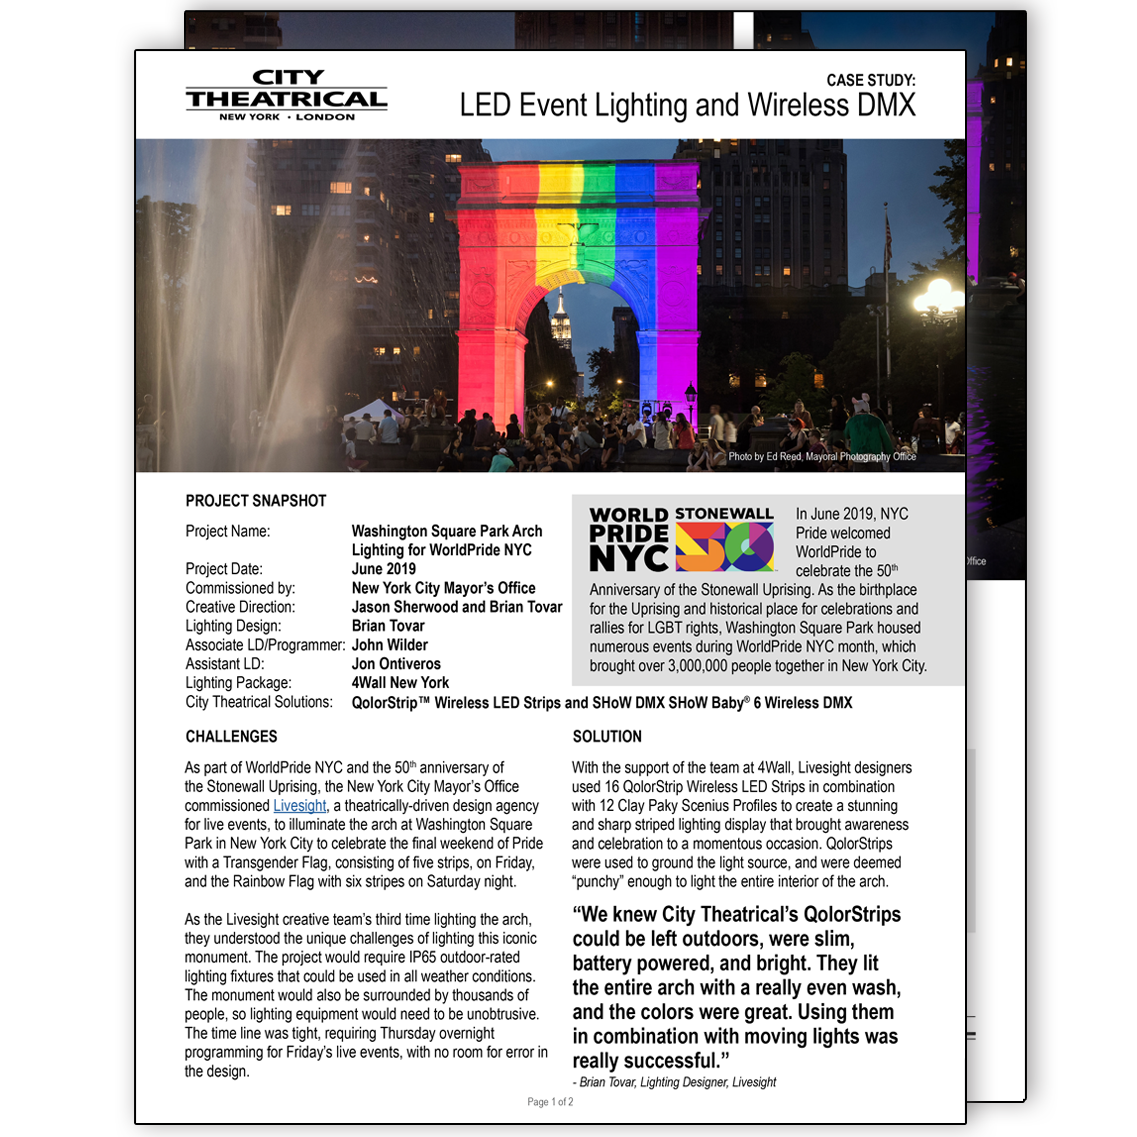 Case Study: QolorStrip Wireless LED Strips at WorldPride NYC